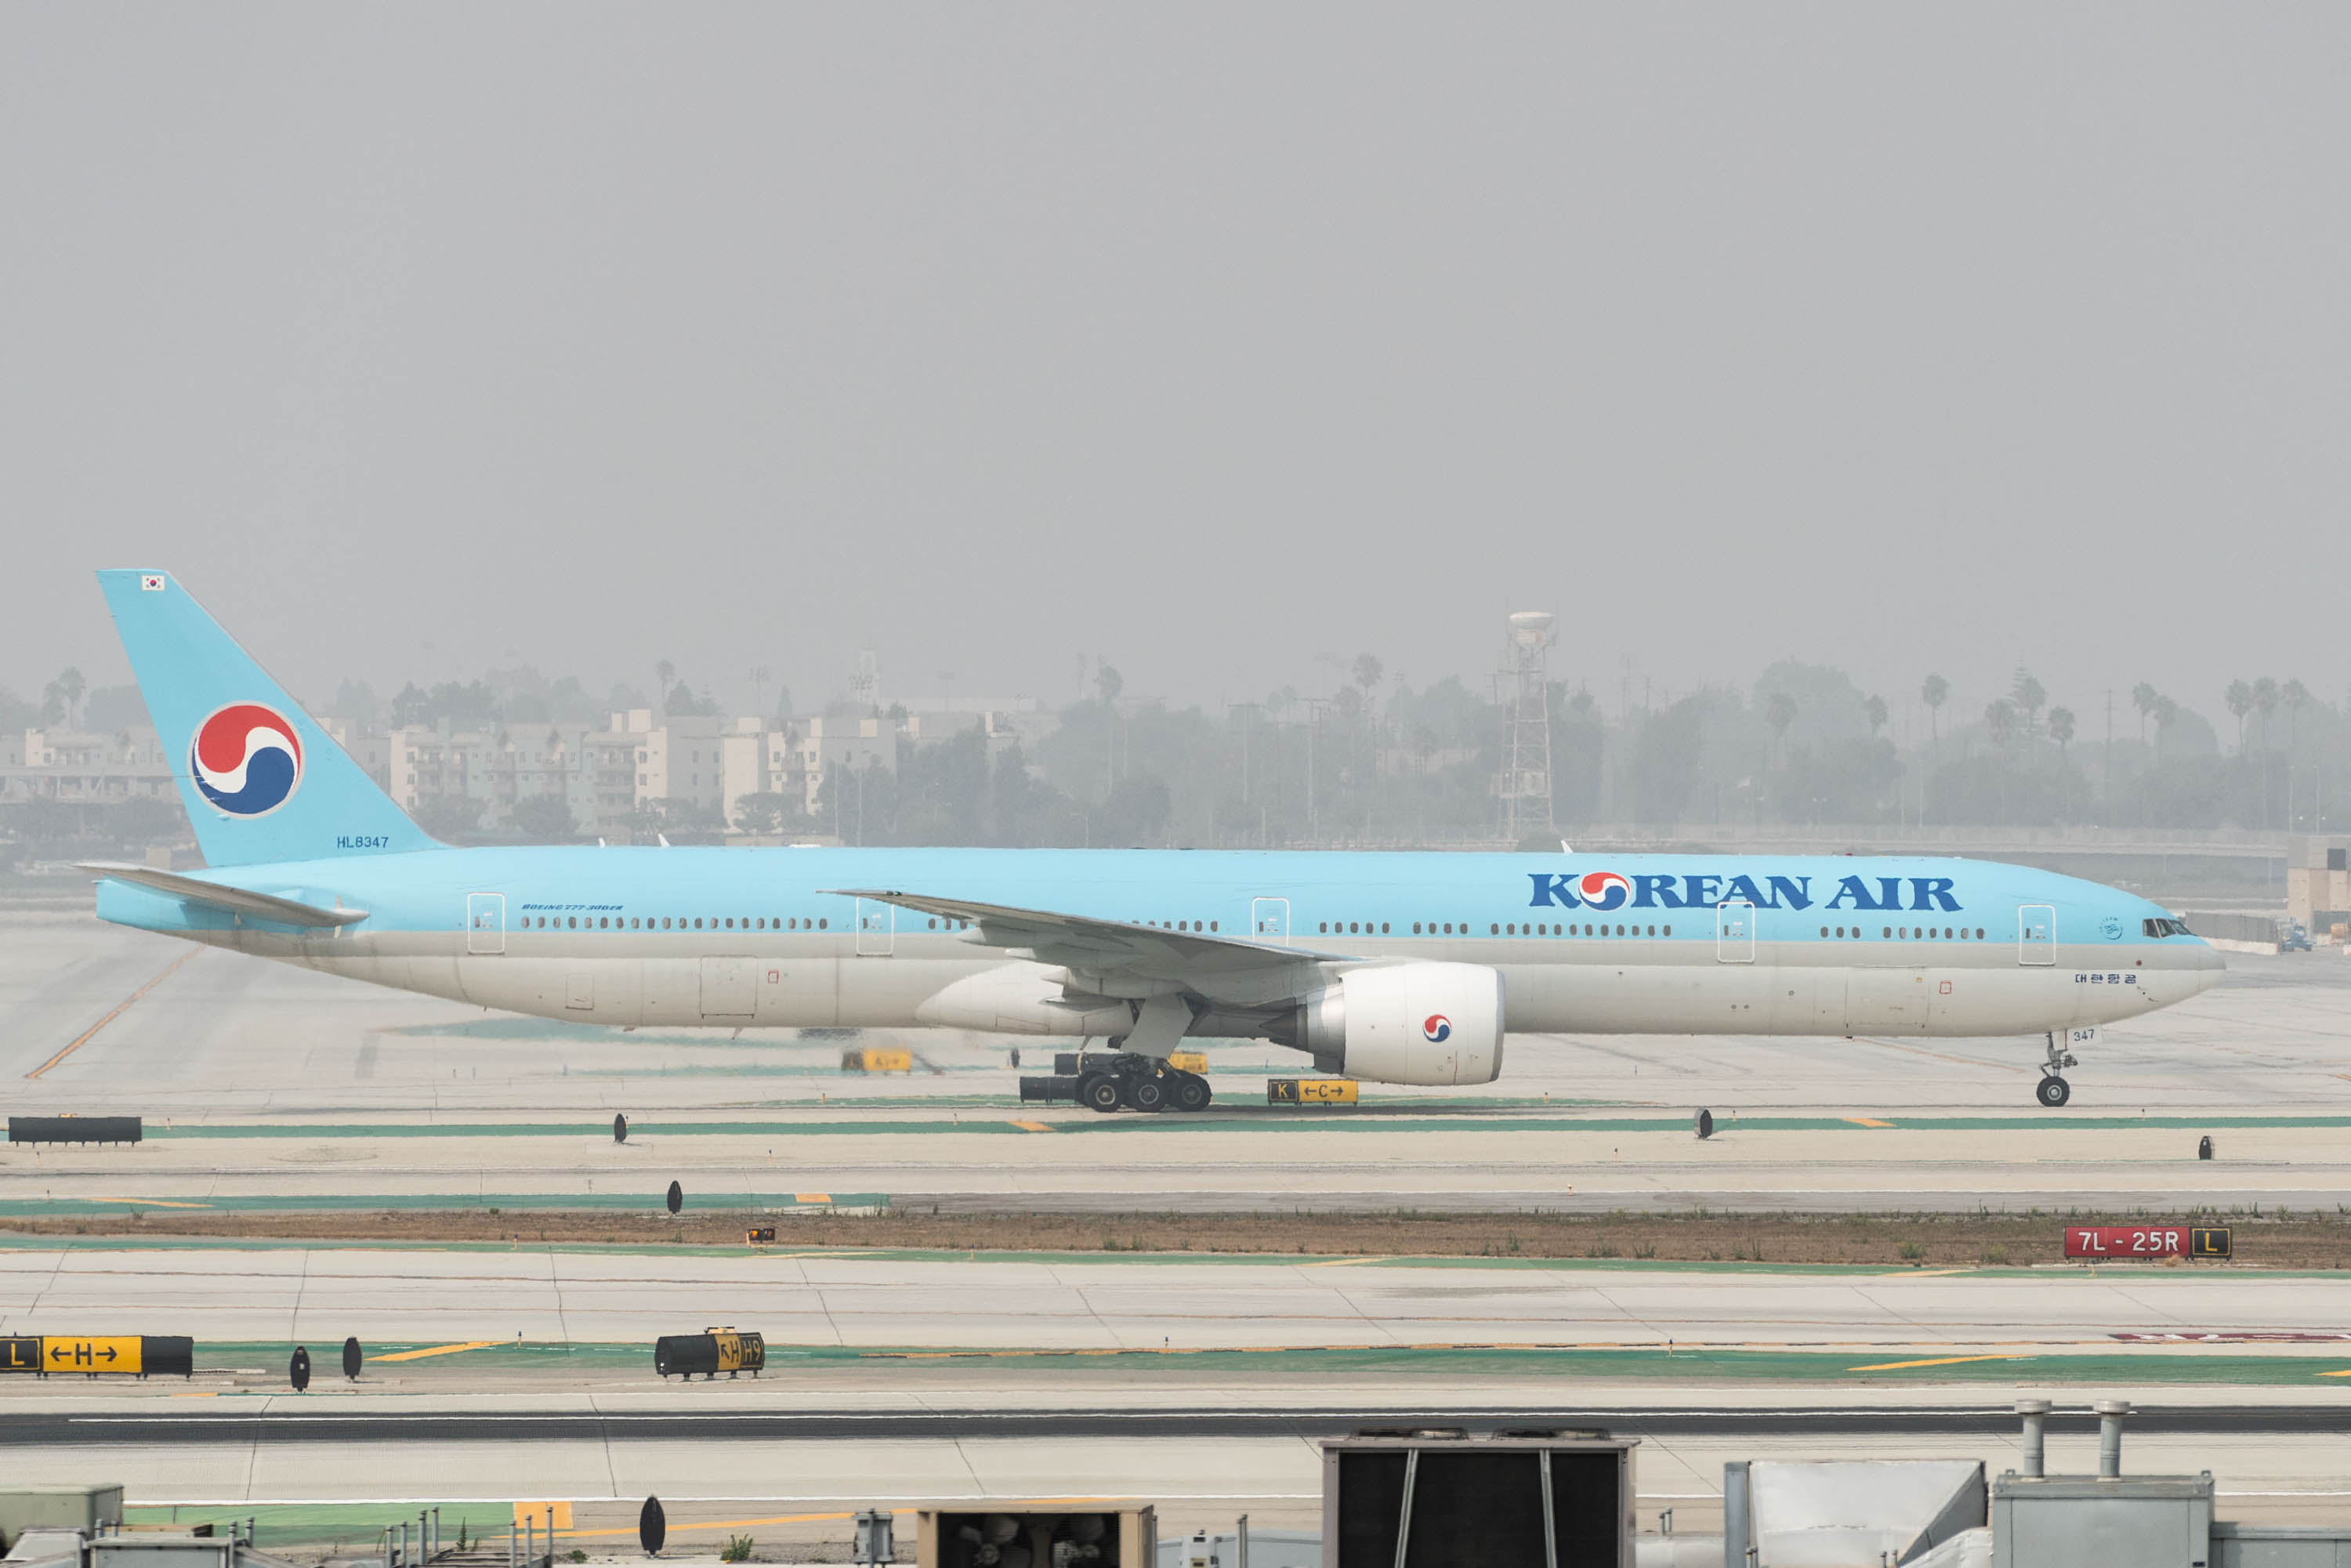 A Korean Air plane arrives at Los Angeles International Airport in California on September 15, 2020.